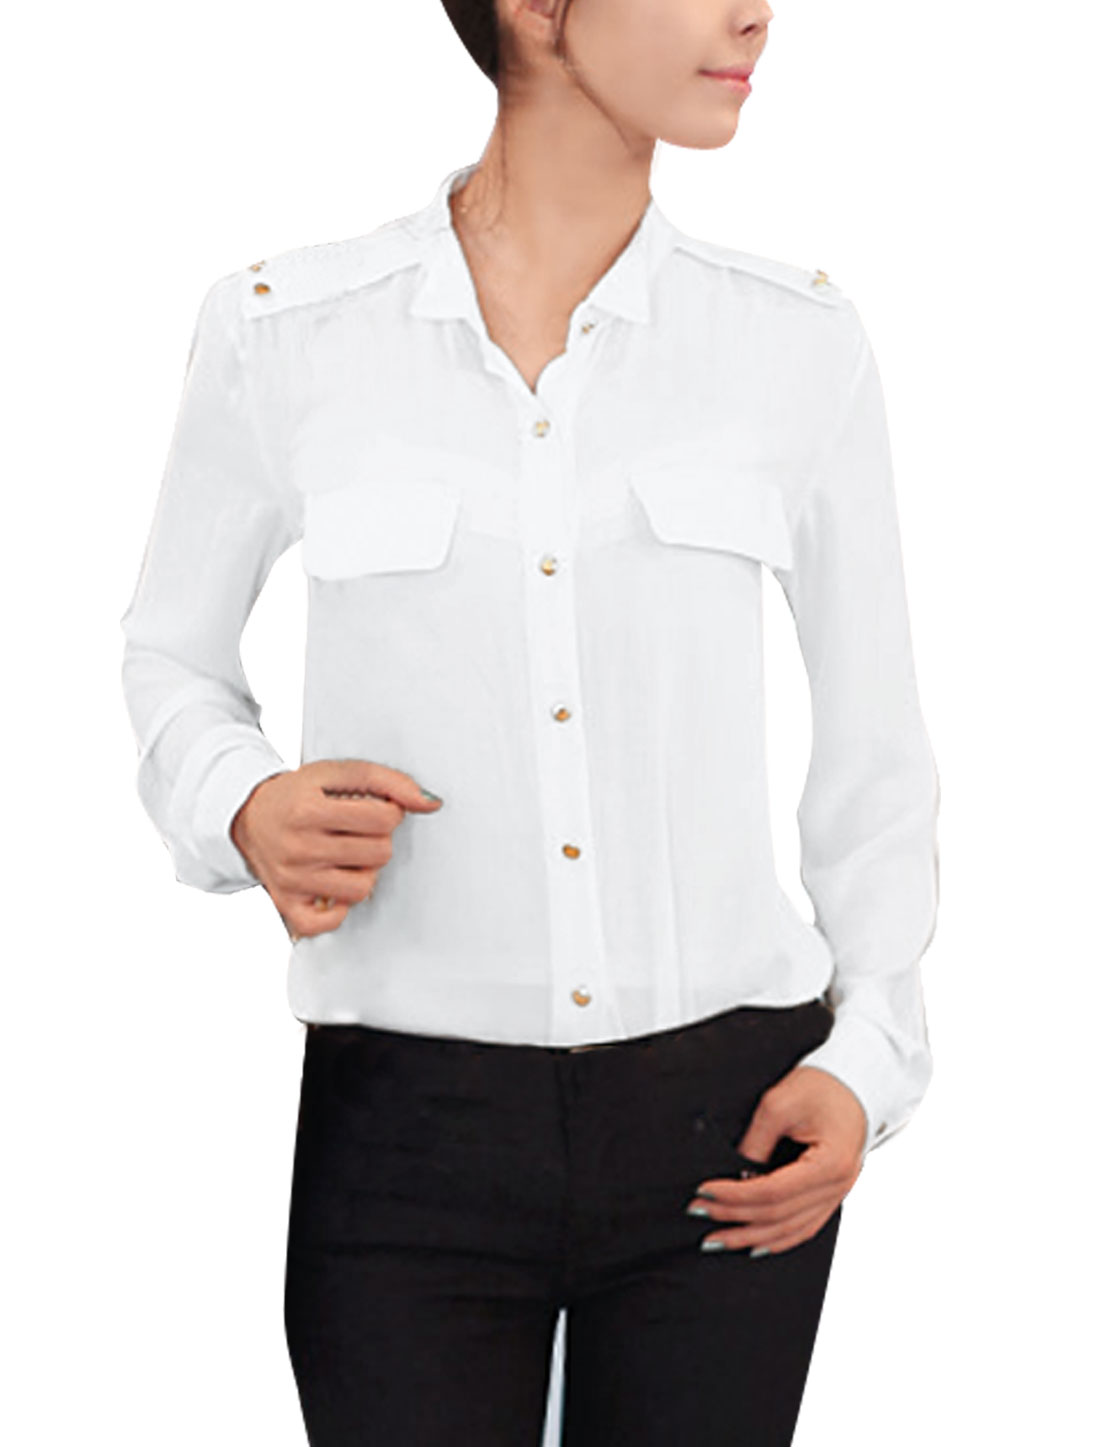 Lady Solid Color Fake Chest Pockets Design White Button Down Shirt XL